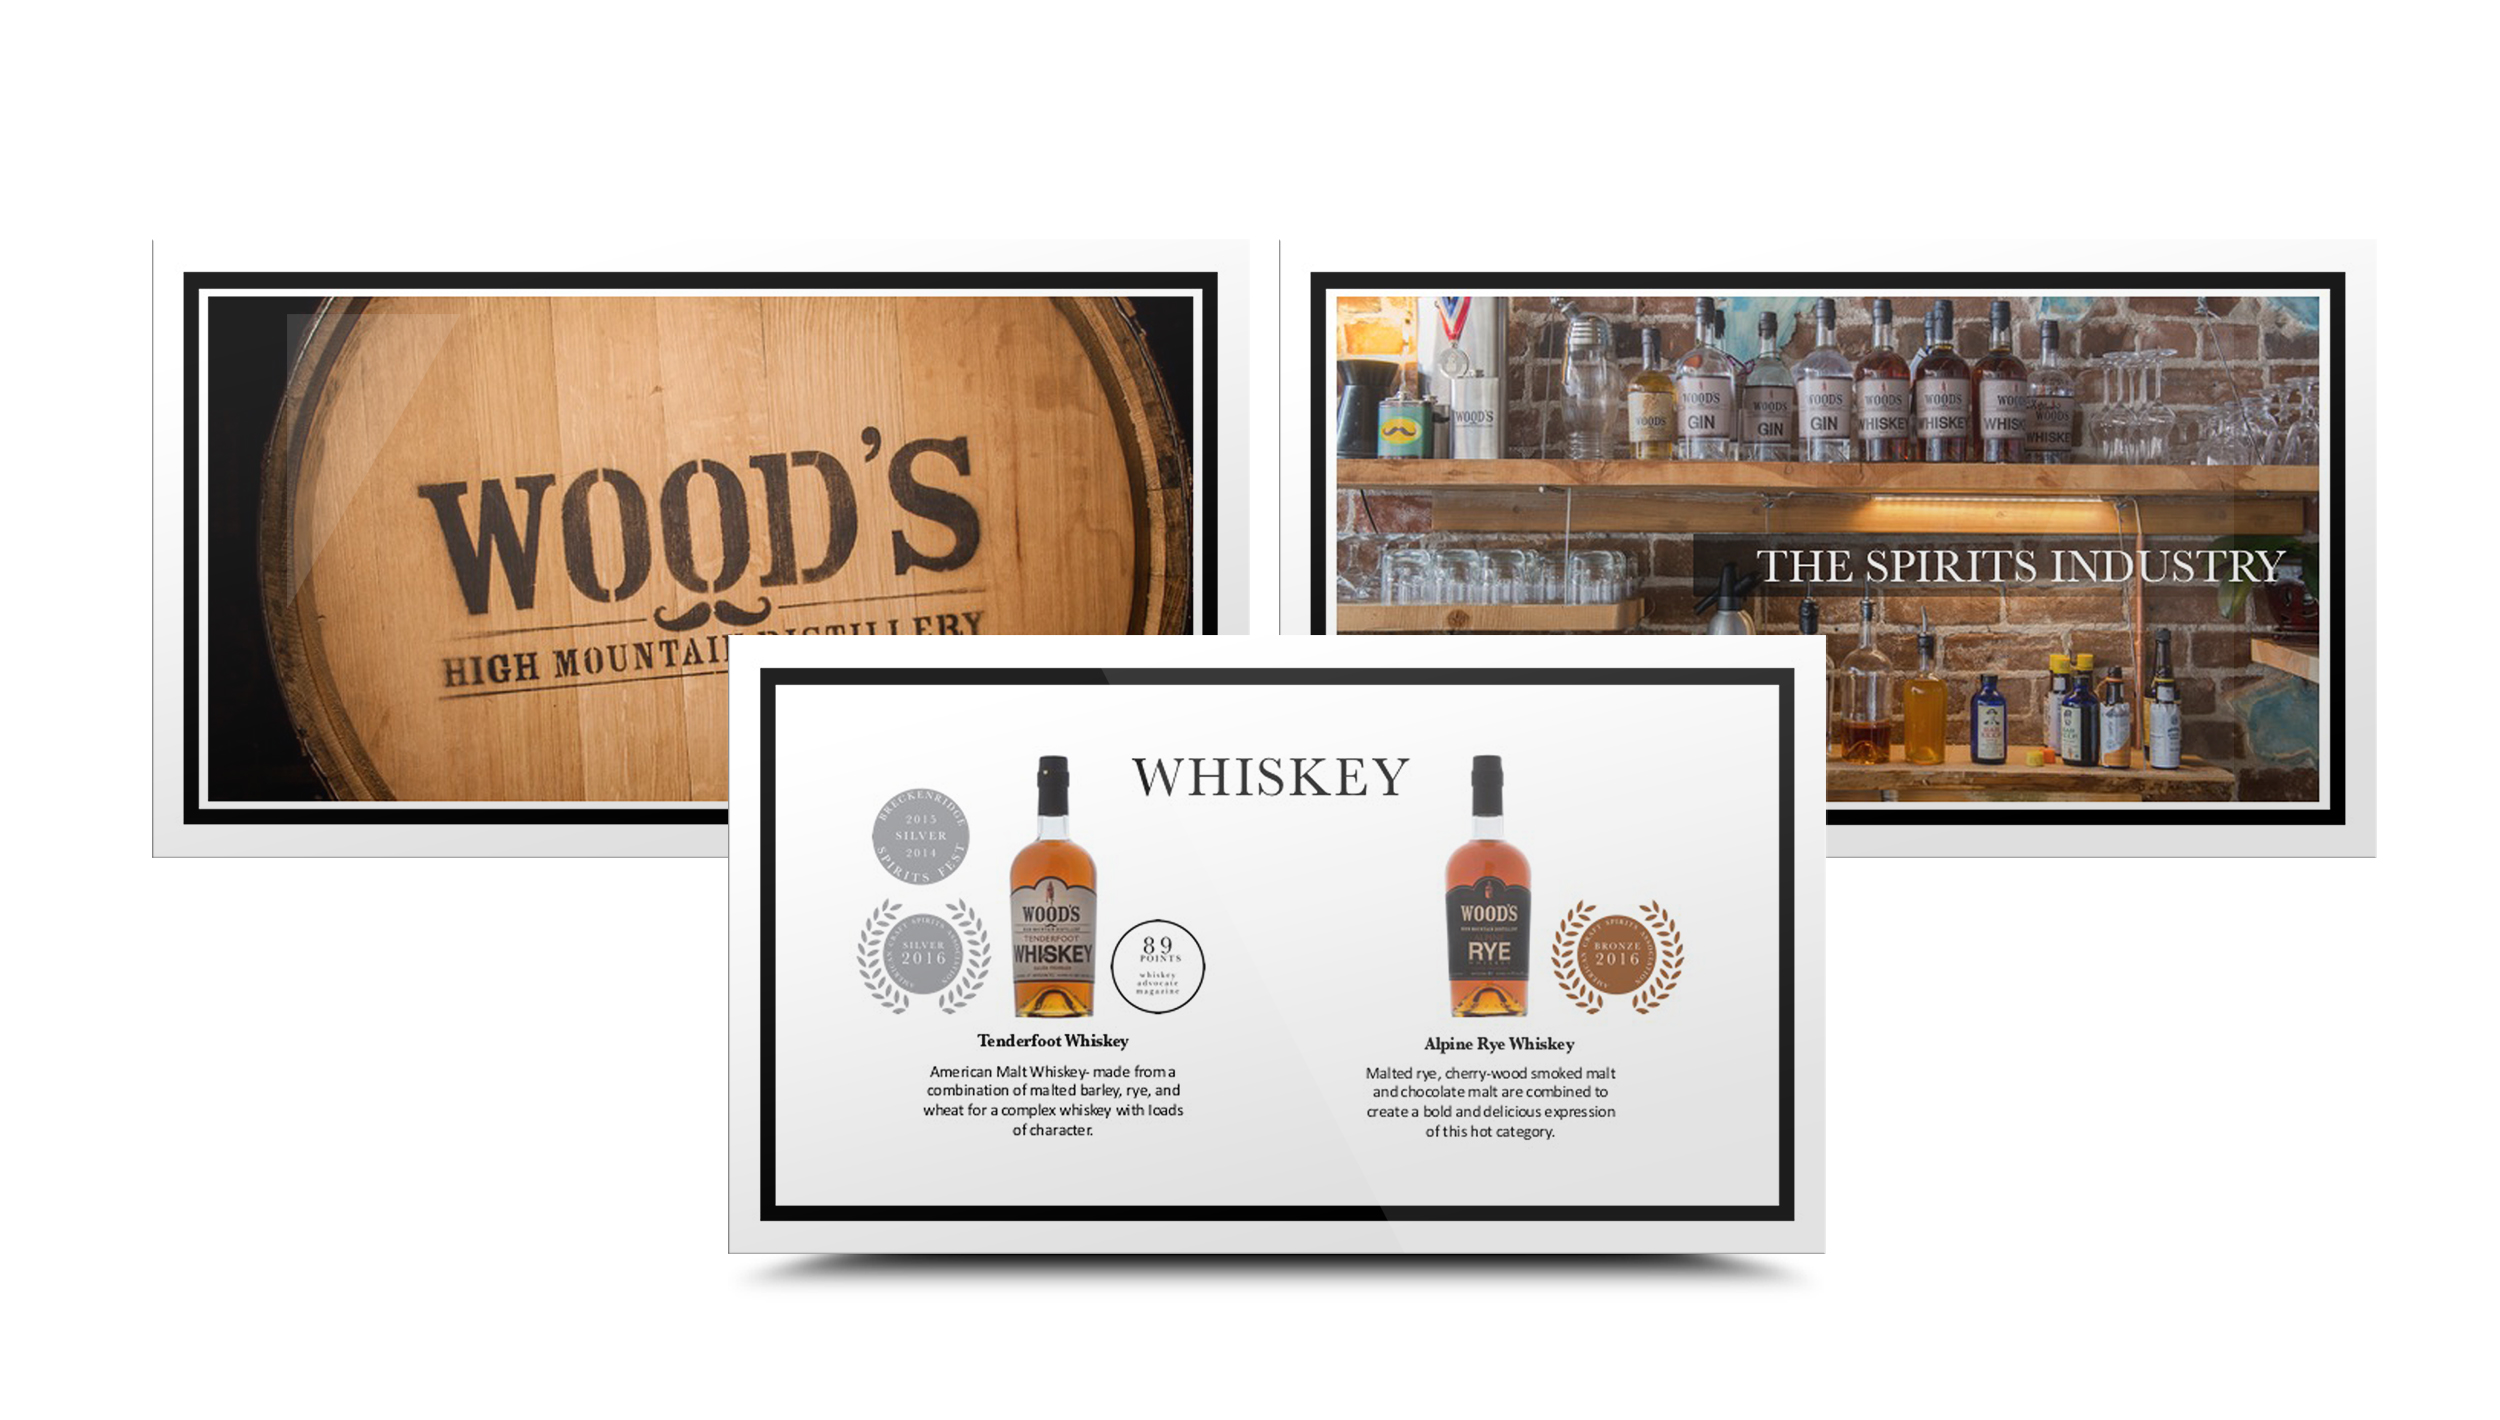 This presentation was designed for Wood's Distillery. The pages showcased he company's whiskey products, values and annual goals.